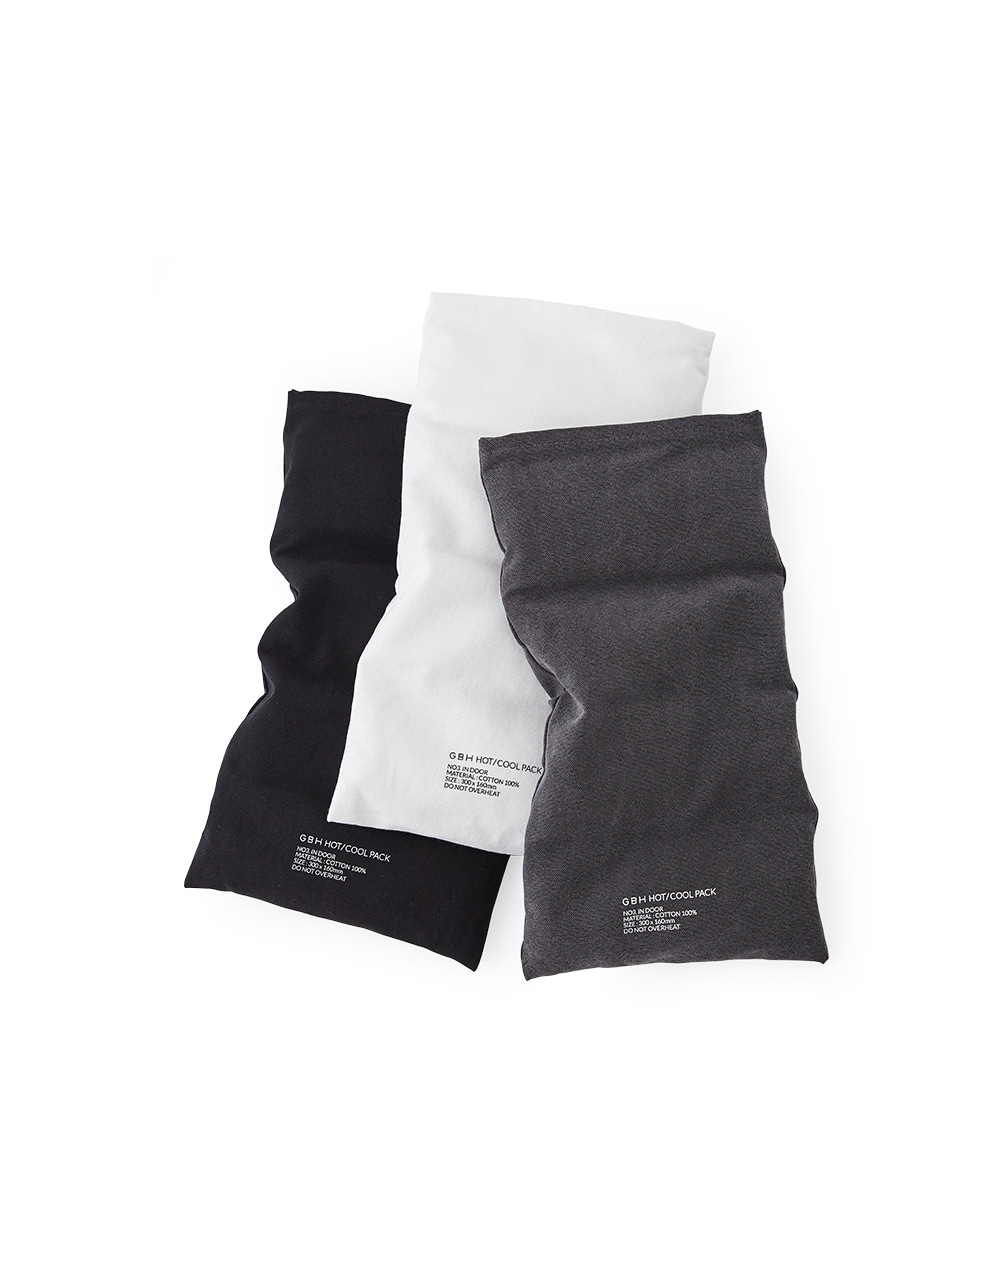 GBH HOME  HOT/COOL PACK LARGE (3 Color)